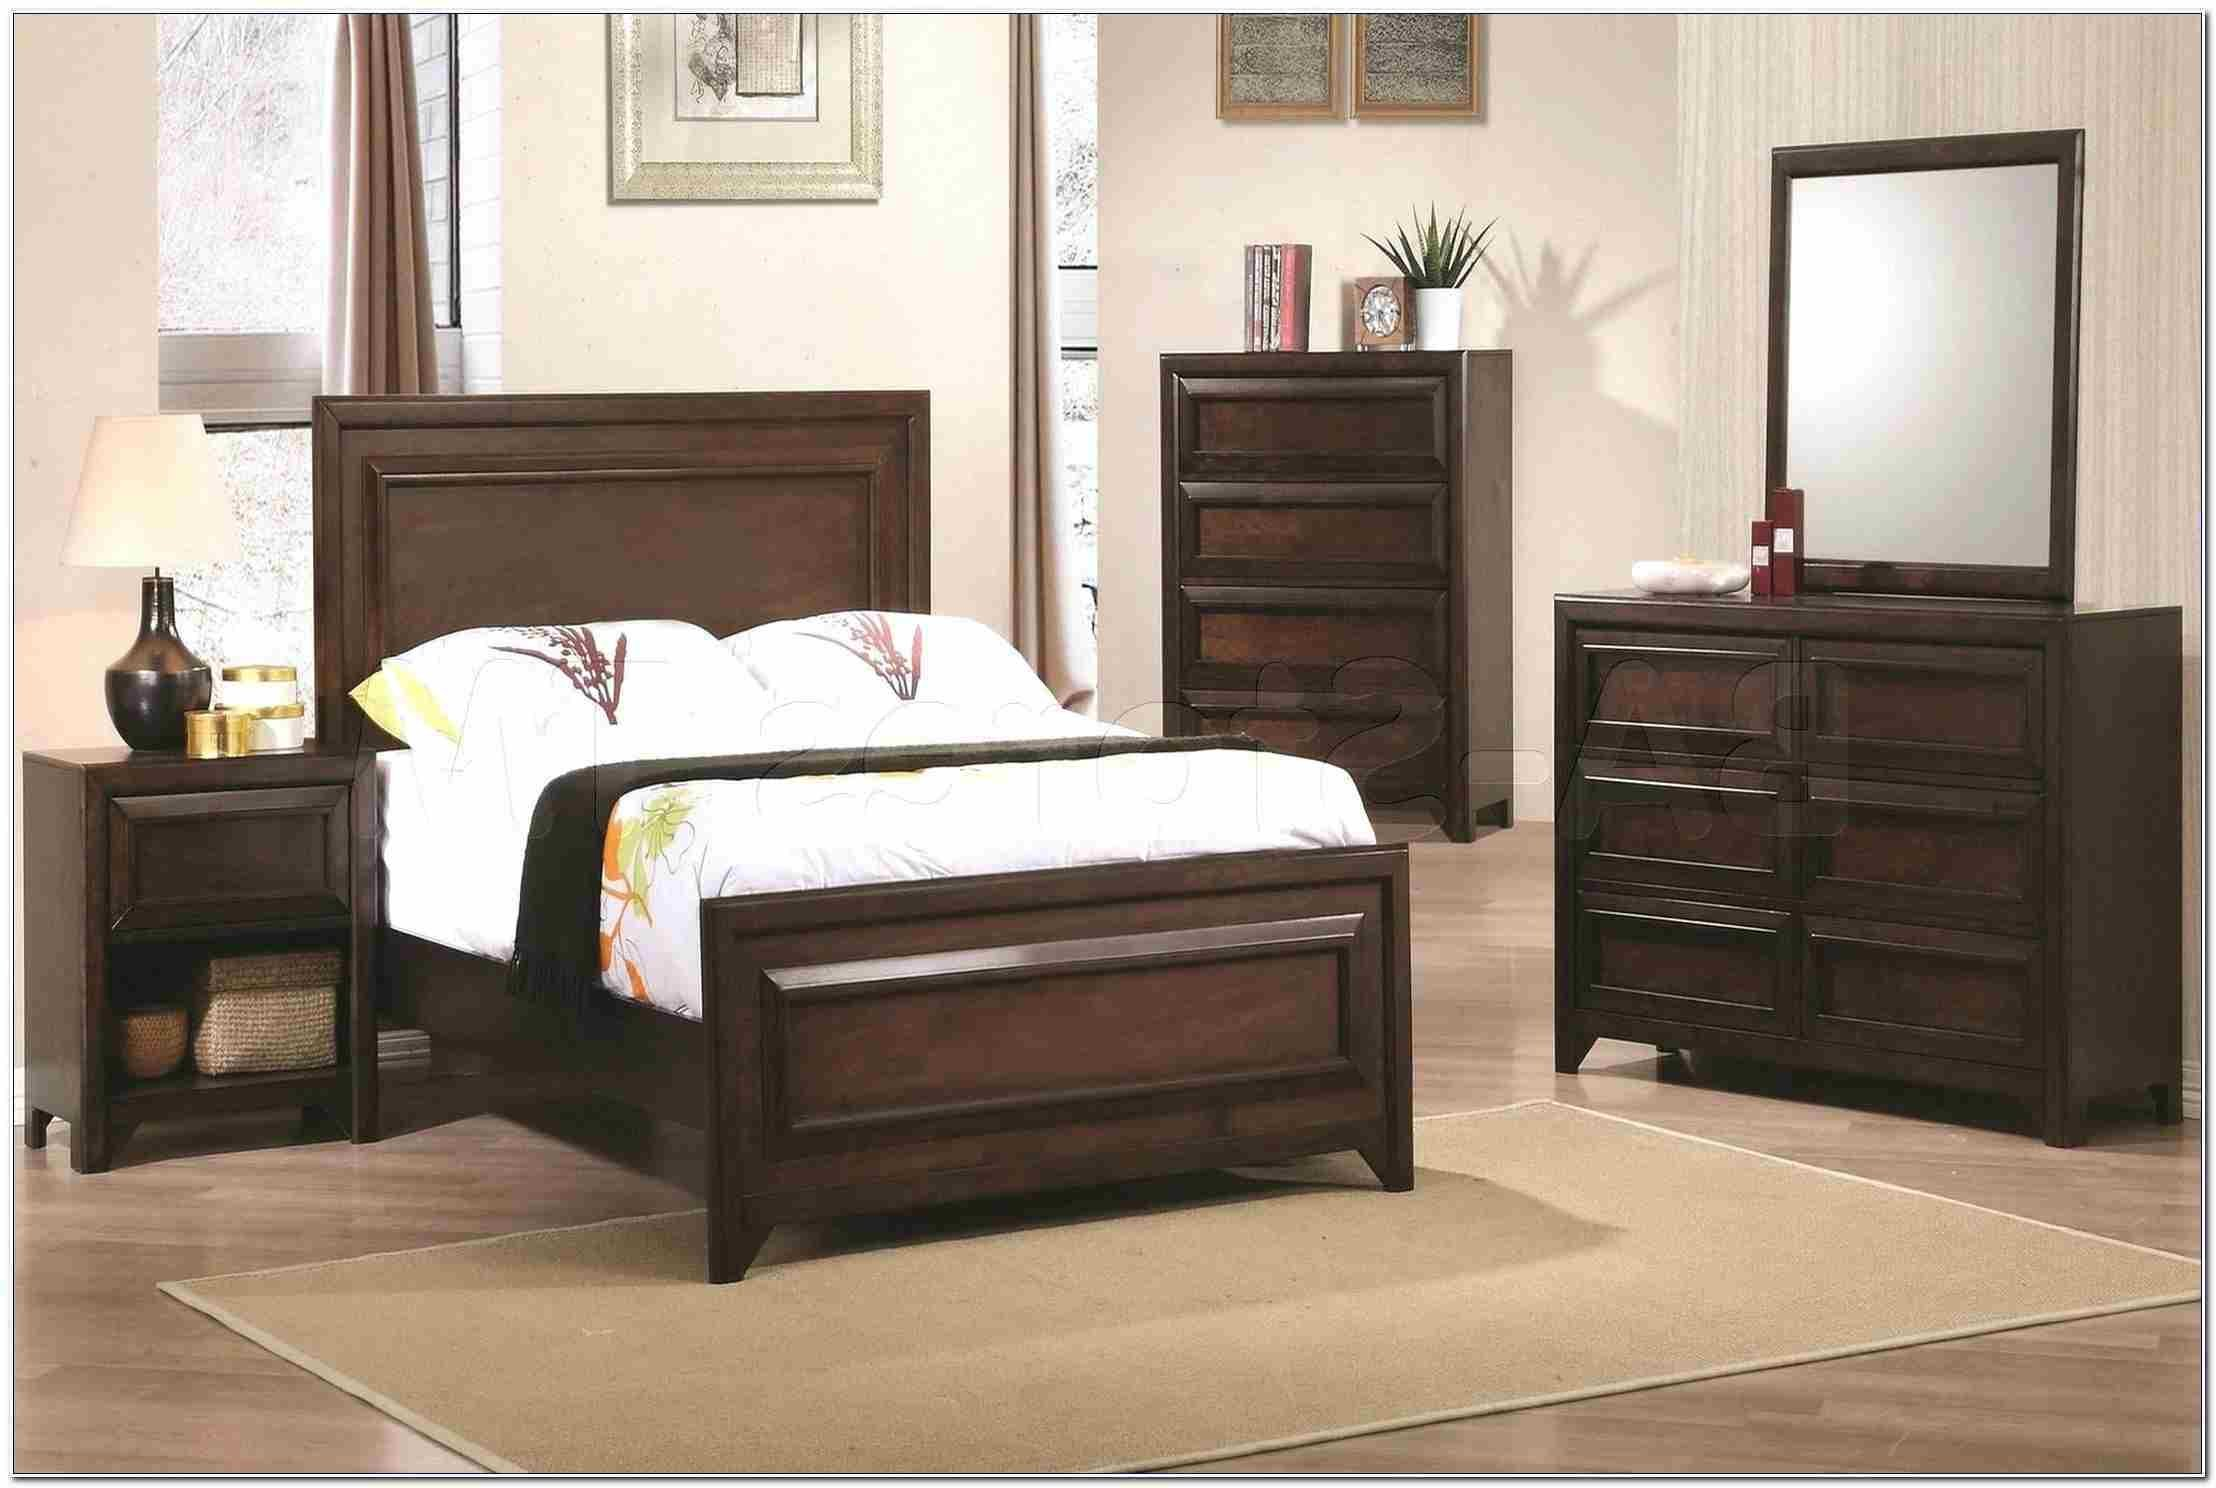 Best Somerset Bedroom Furniture Collection – Bedroom Ideas With Pictures